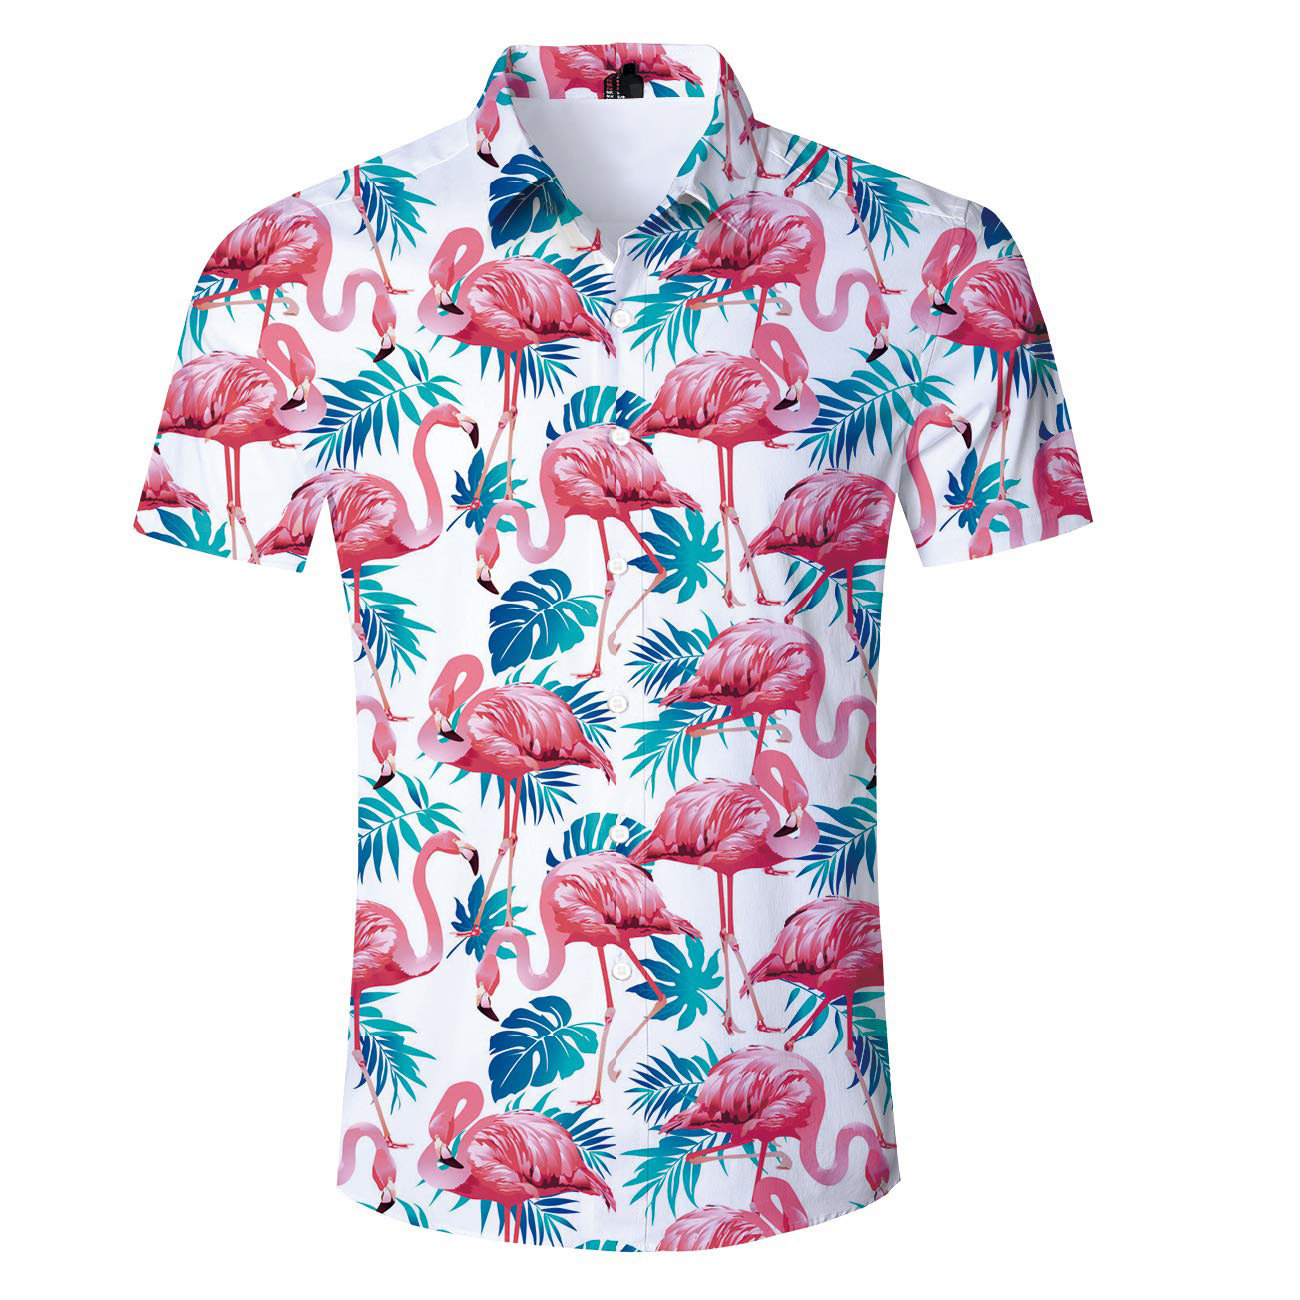 US SIZE 2019 New Summer Tropical Leaves Flamingo Print Beach Shirt Hawaiian Vacation Blouse